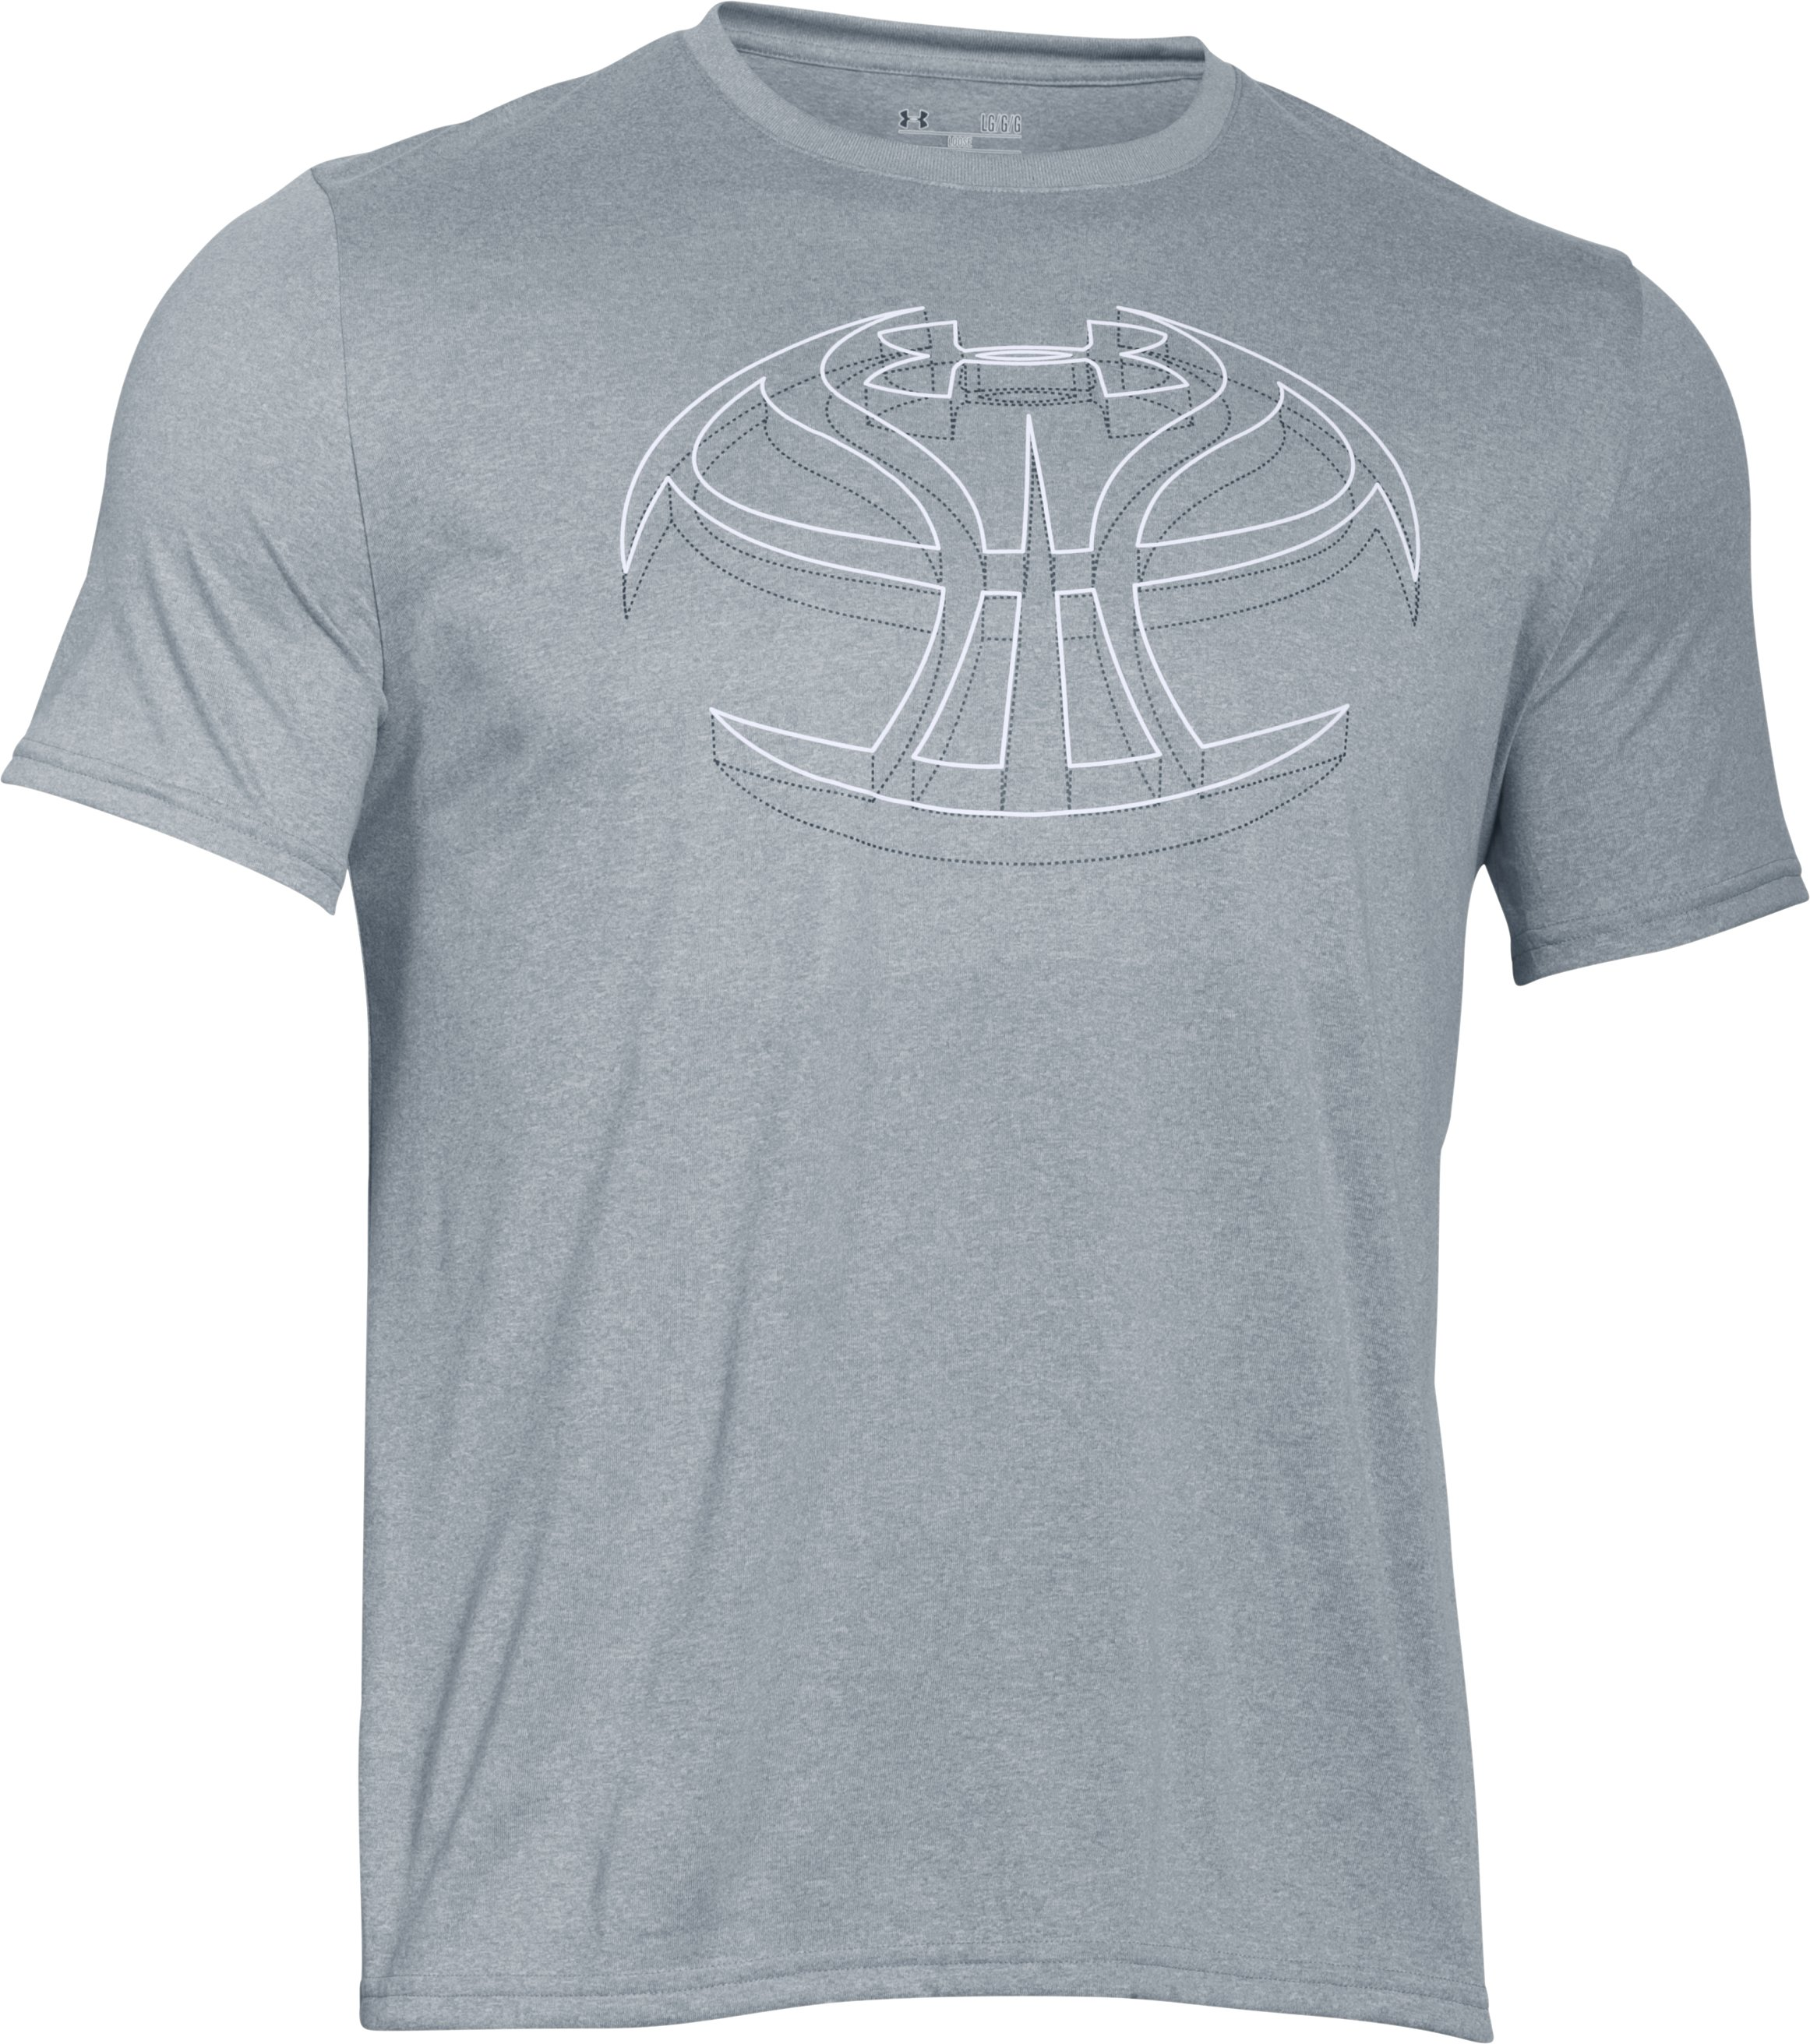 Men's UA 3D Basketball Icon T-Shirt, True Gray Heather, undefined